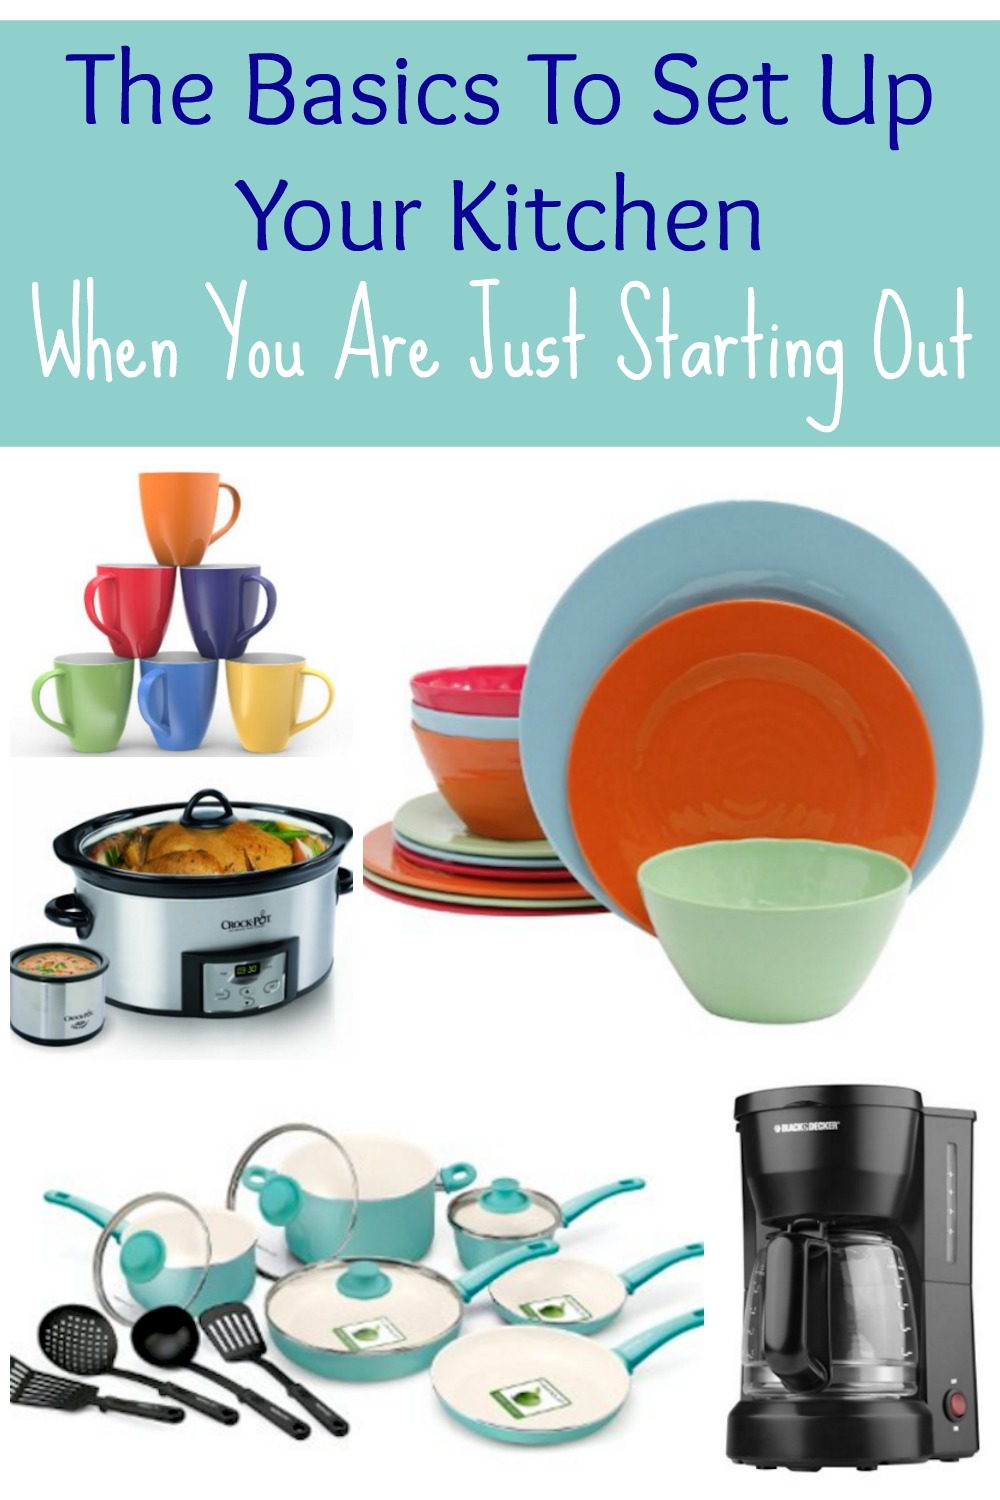 Here are the basics to set up your kitchen when you are just starting out!